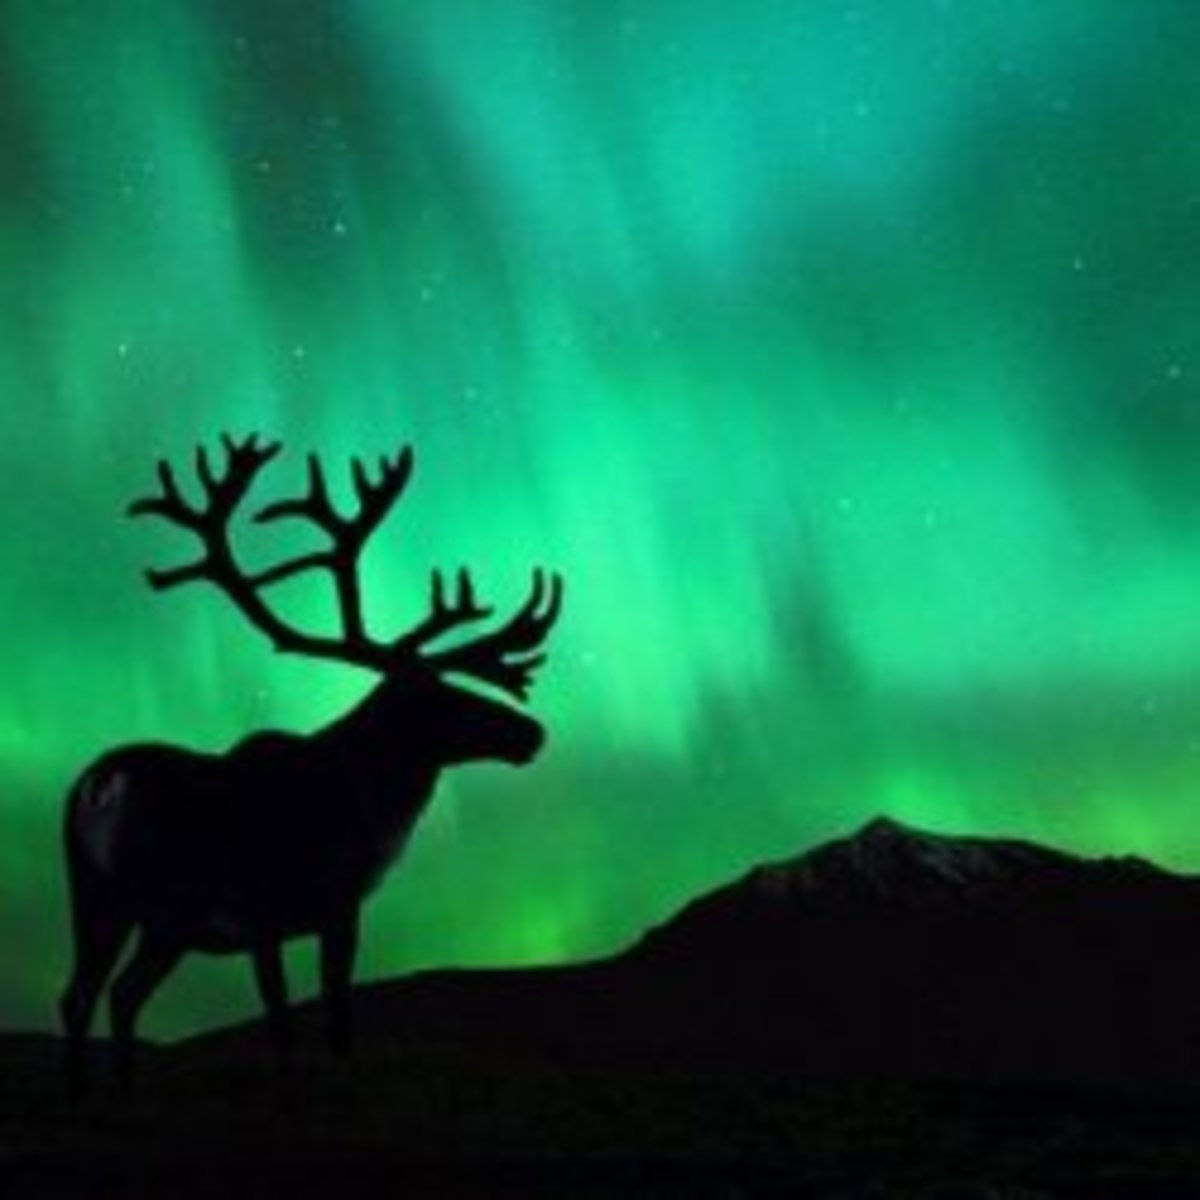 Image credit: http://environment.nationalgeographic.com/environment/photos/arctic-climate-change/